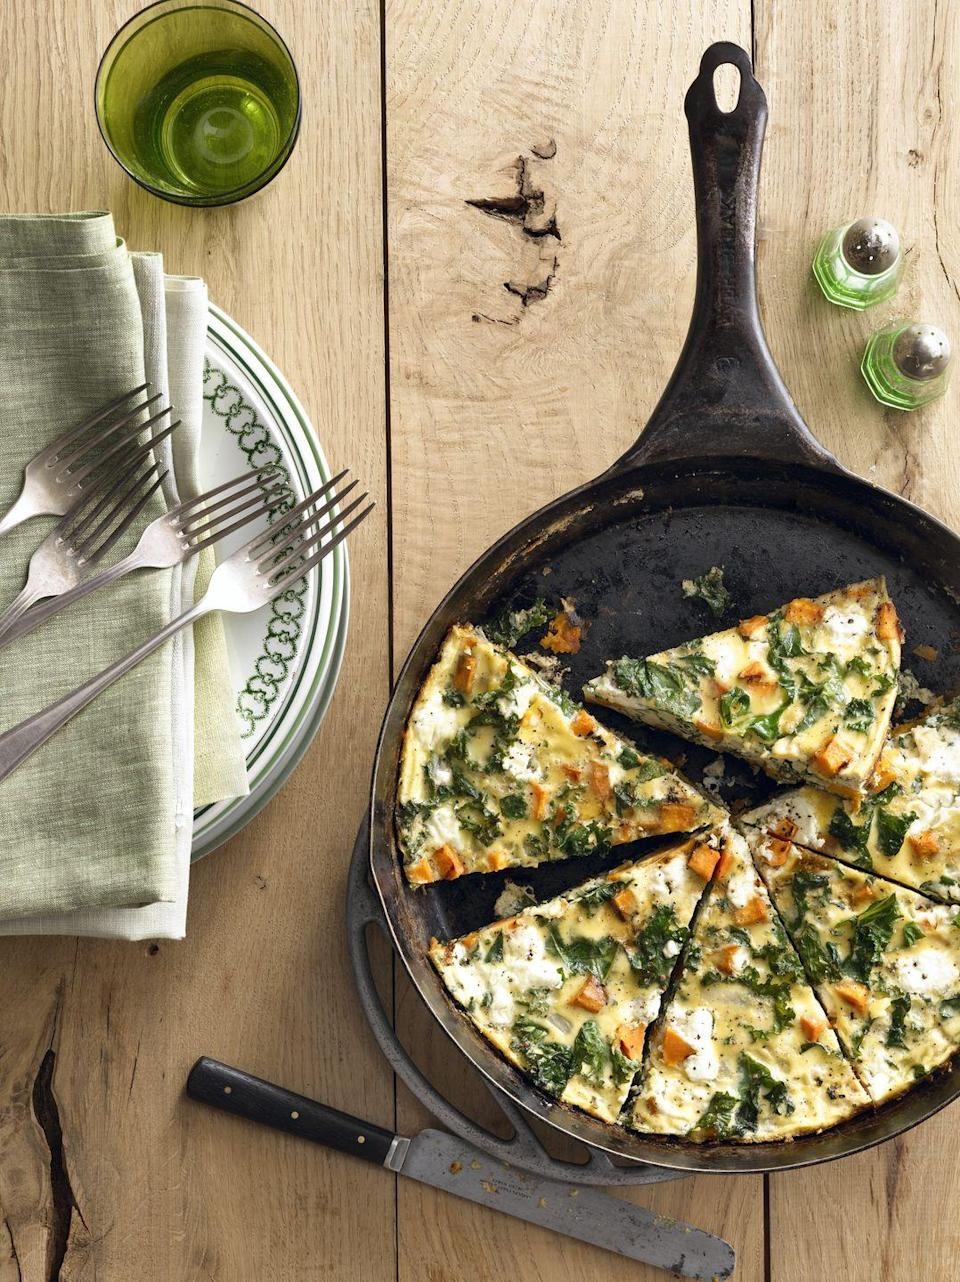 """<p>This easy, eggy dish bakes in the oven for just 10-15 minutes. What could be easier?</p><p><strong><a href=""""https://www.countryliving.com/food-drinks/recipes/a5502/sweet-potato-kale-frittata-recipe-clx0914/"""" rel=""""nofollow noopener"""" target=""""_blank"""" data-ylk=""""slk:Get the recipe"""" class=""""link rapid-noclick-resp"""">Get the recipe</a>.</strong></p><p><strong><a class=""""link rapid-noclick-resp"""" href=""""https://www.amazon.com/GreaterGoods-Skillet-Pre-Seasoned-handmade-Certified/dp/B07PP9TPRZ/?tag=syn-yahoo-20&ascsubtag=%5Bartid%7C10050.g.34822192%5Bsrc%7Cyahoo-us"""" rel=""""nofollow noopener"""" target=""""_blank"""" data-ylk=""""slk:SHOP SKILLETS"""">SHOP SKILLETS</a><br></strong></p>"""